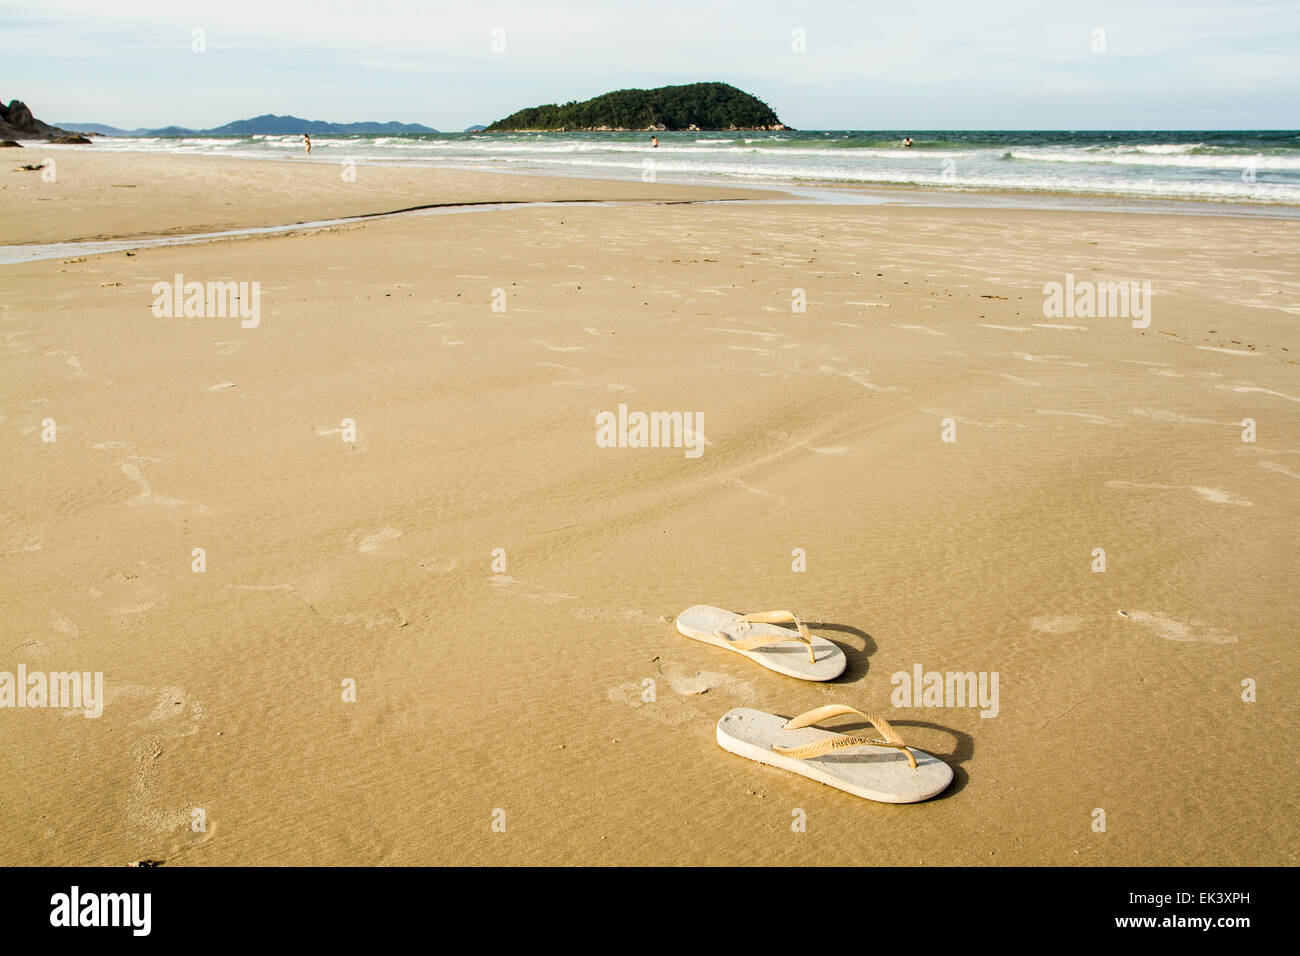 Flip flop sandals on the sand at Palmas Beach. Governador Celso Ramos, Santa Catarina, Brazil. - Stock Image